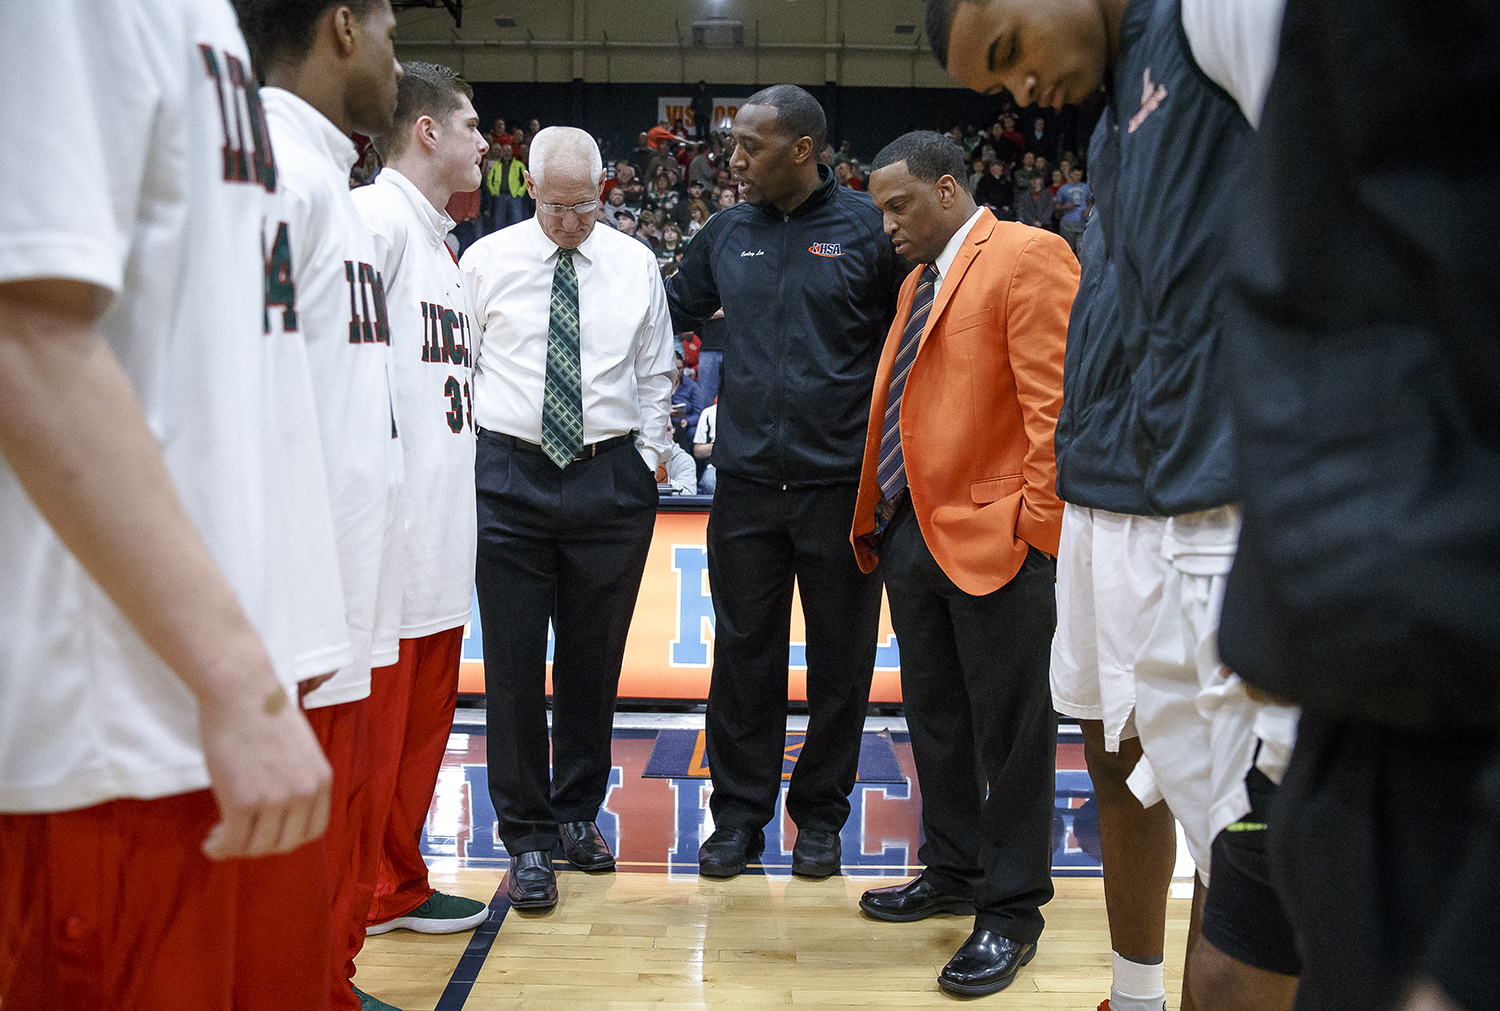 Lincoln boys basketball head coach Neil Alexander, left, and Lanphier boys basketball head coach Blake Turner, right, meet with the captains and referees prior to the first half of the Class 3A Rochester Regional title game at the Rochester Athletic Complex, Friday, March 2, 2018, in Rochester, Ill. [Justin L. Fowler/The State Journal-Register]